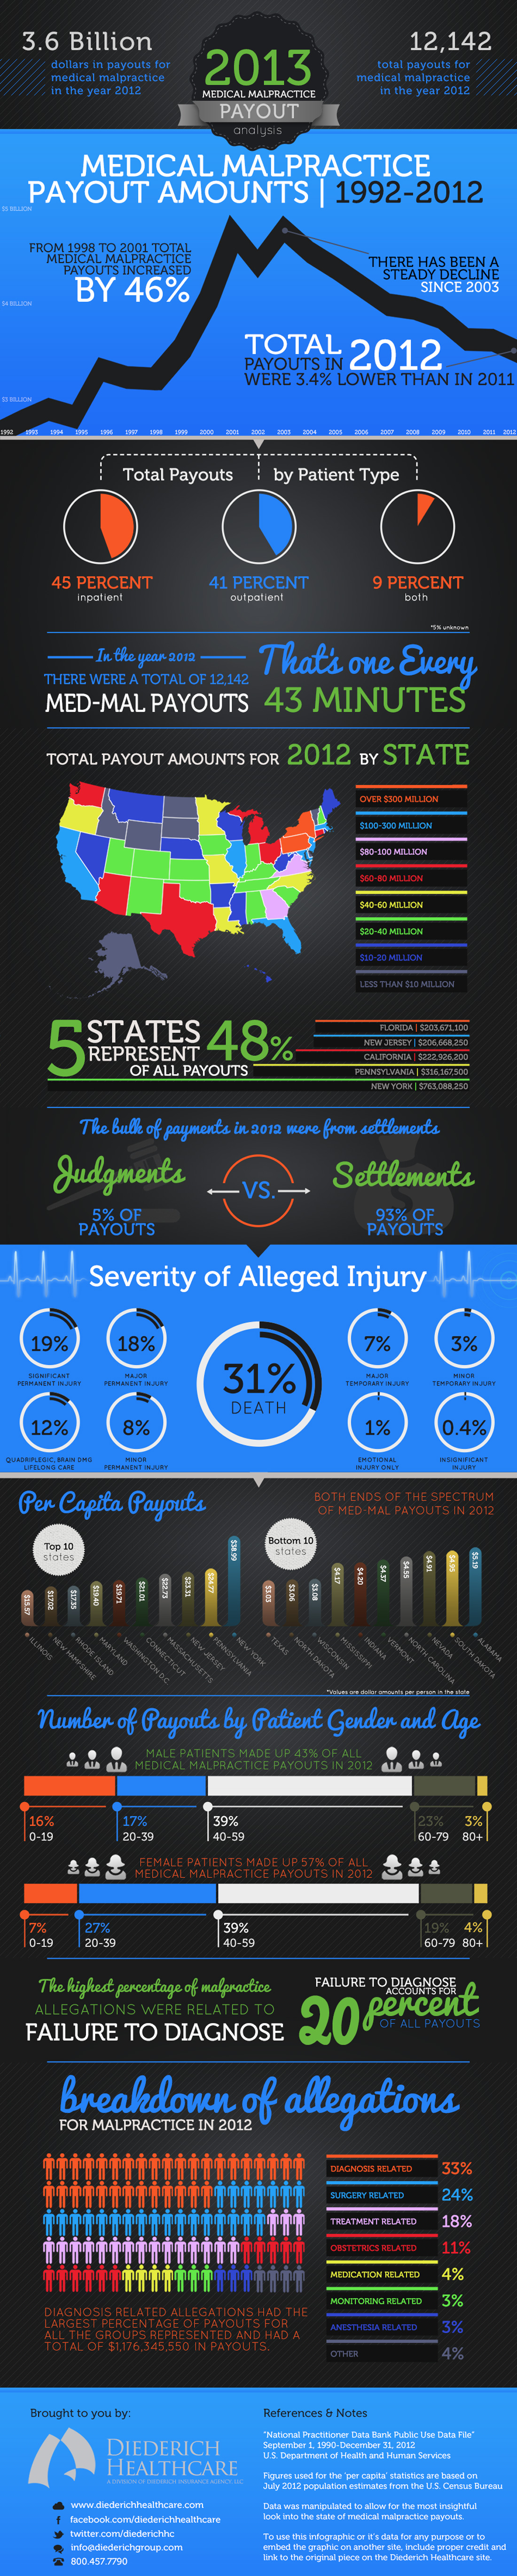 2013 Medical Malpractice Payout Analysis